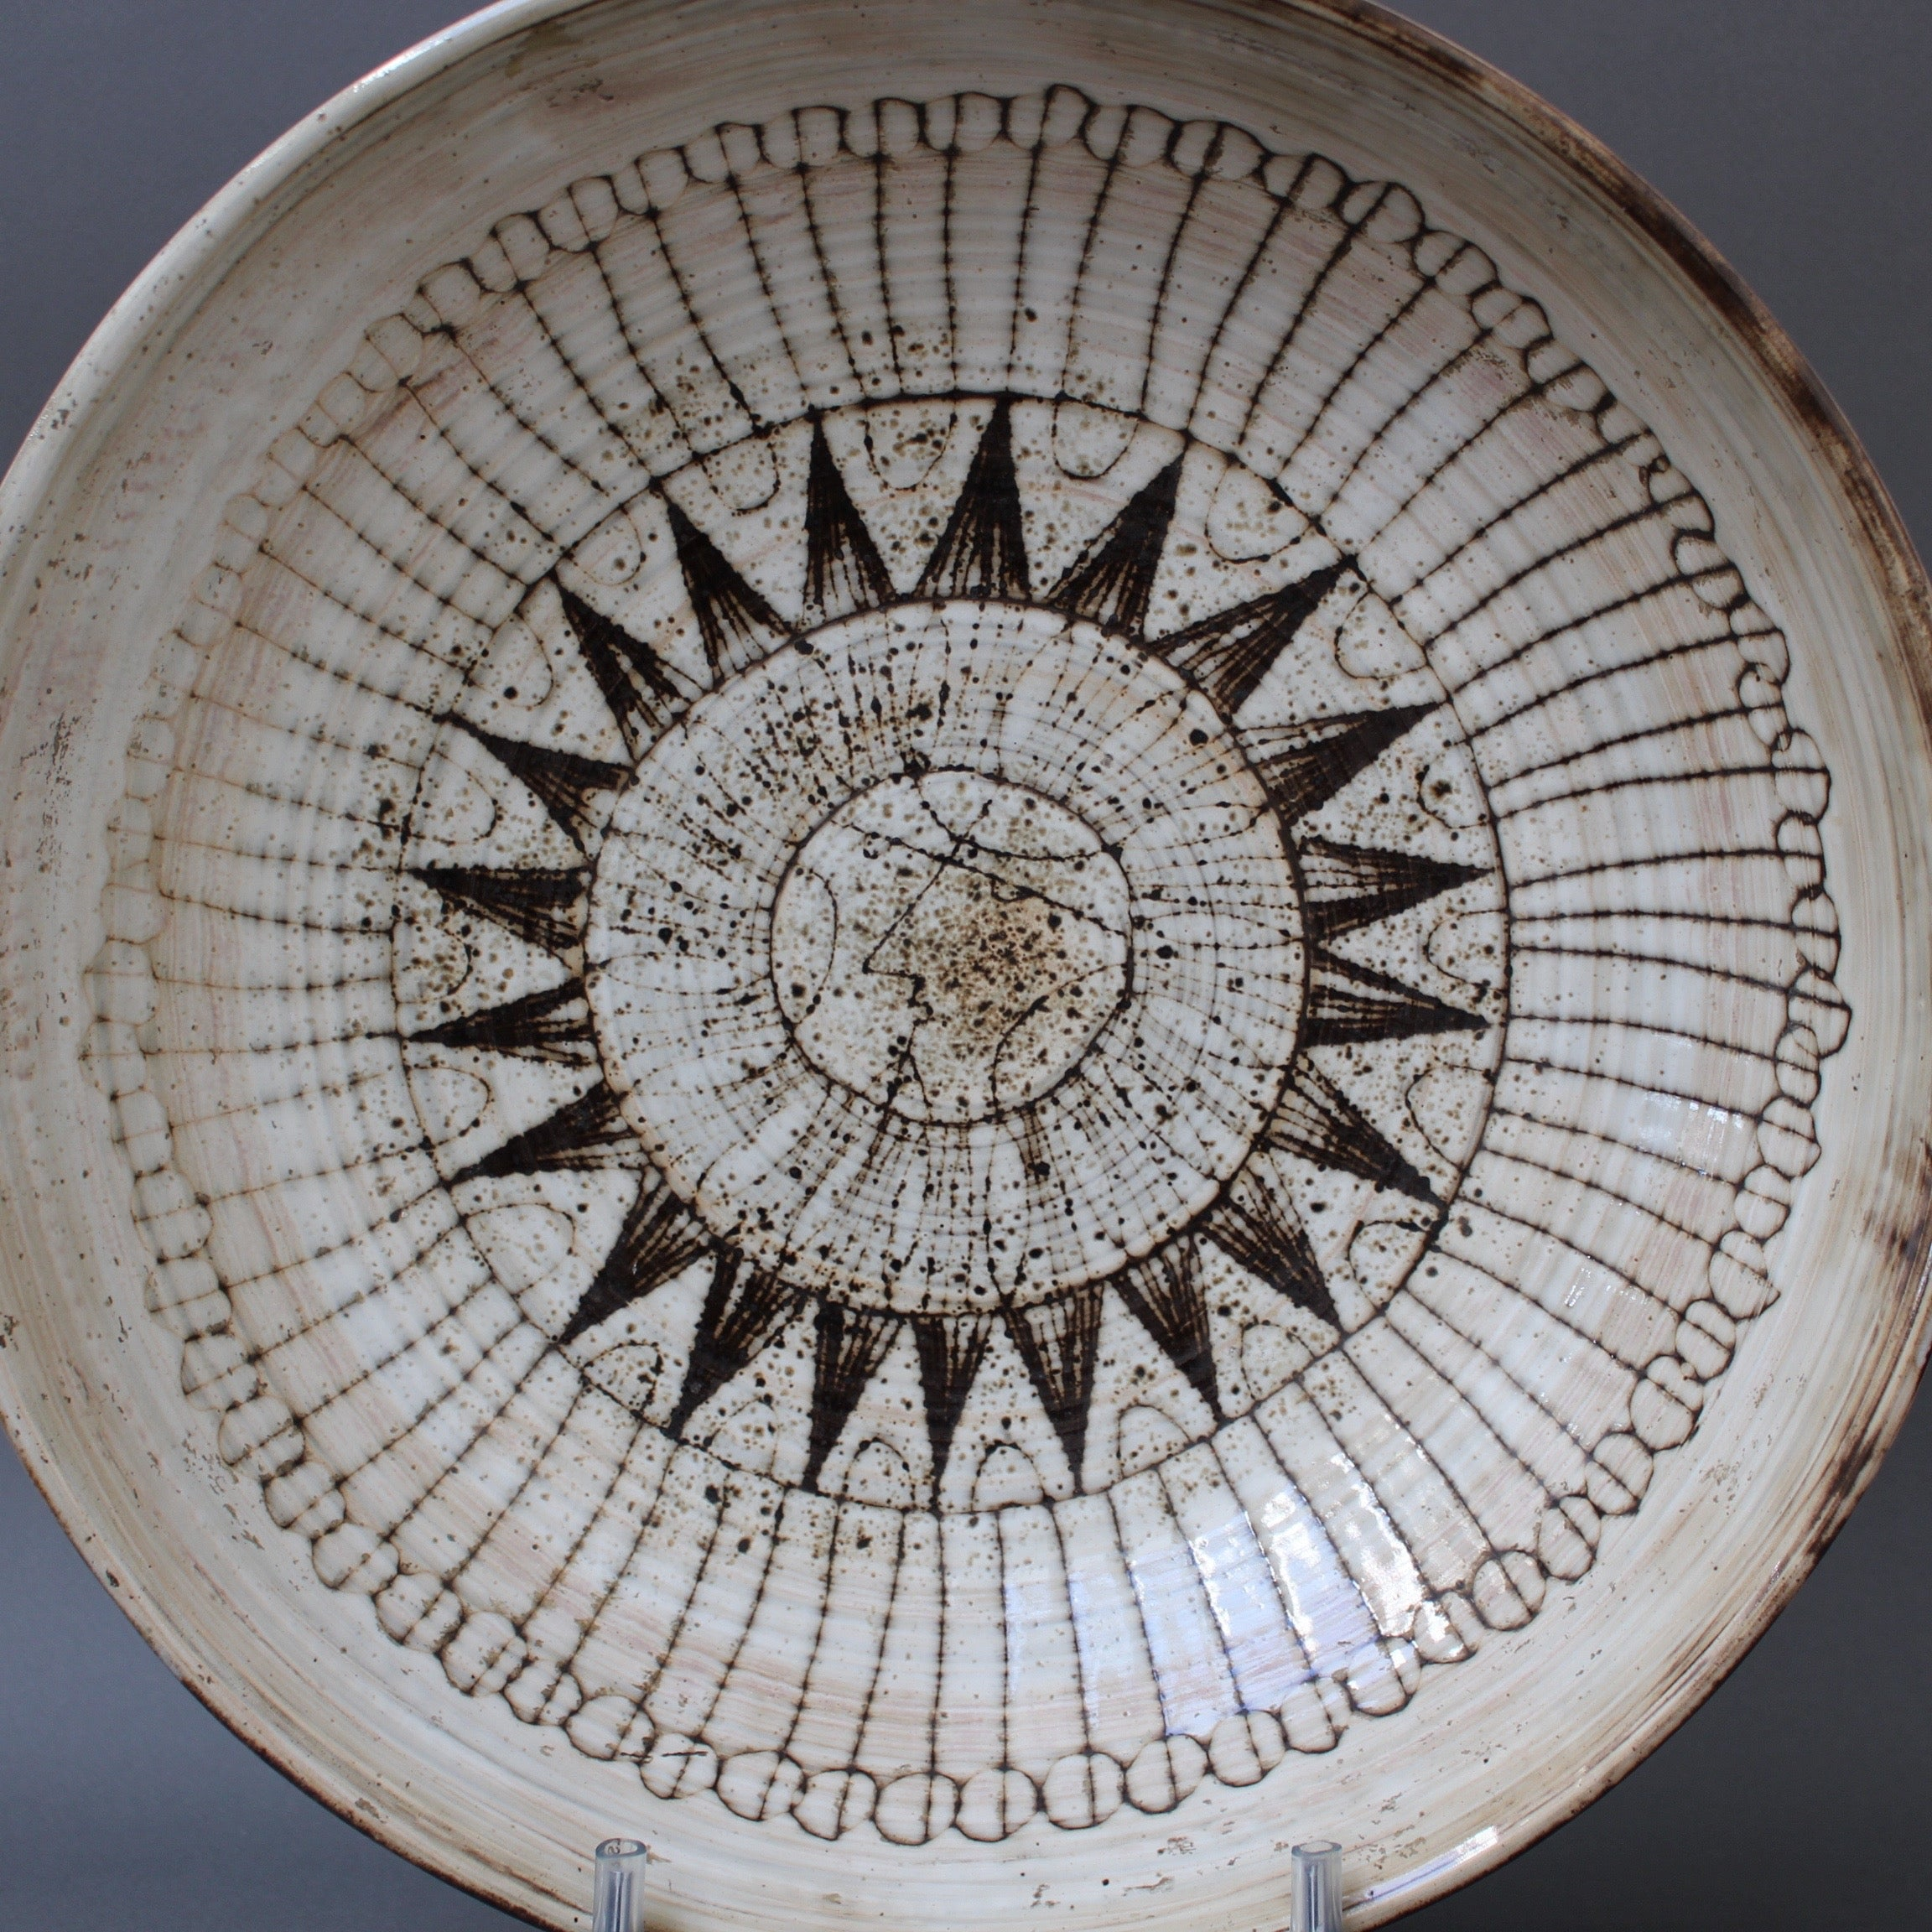 Large Decorative Bowl by Jacques Pouchain - Atelier Dieulefit (circa 1960s)